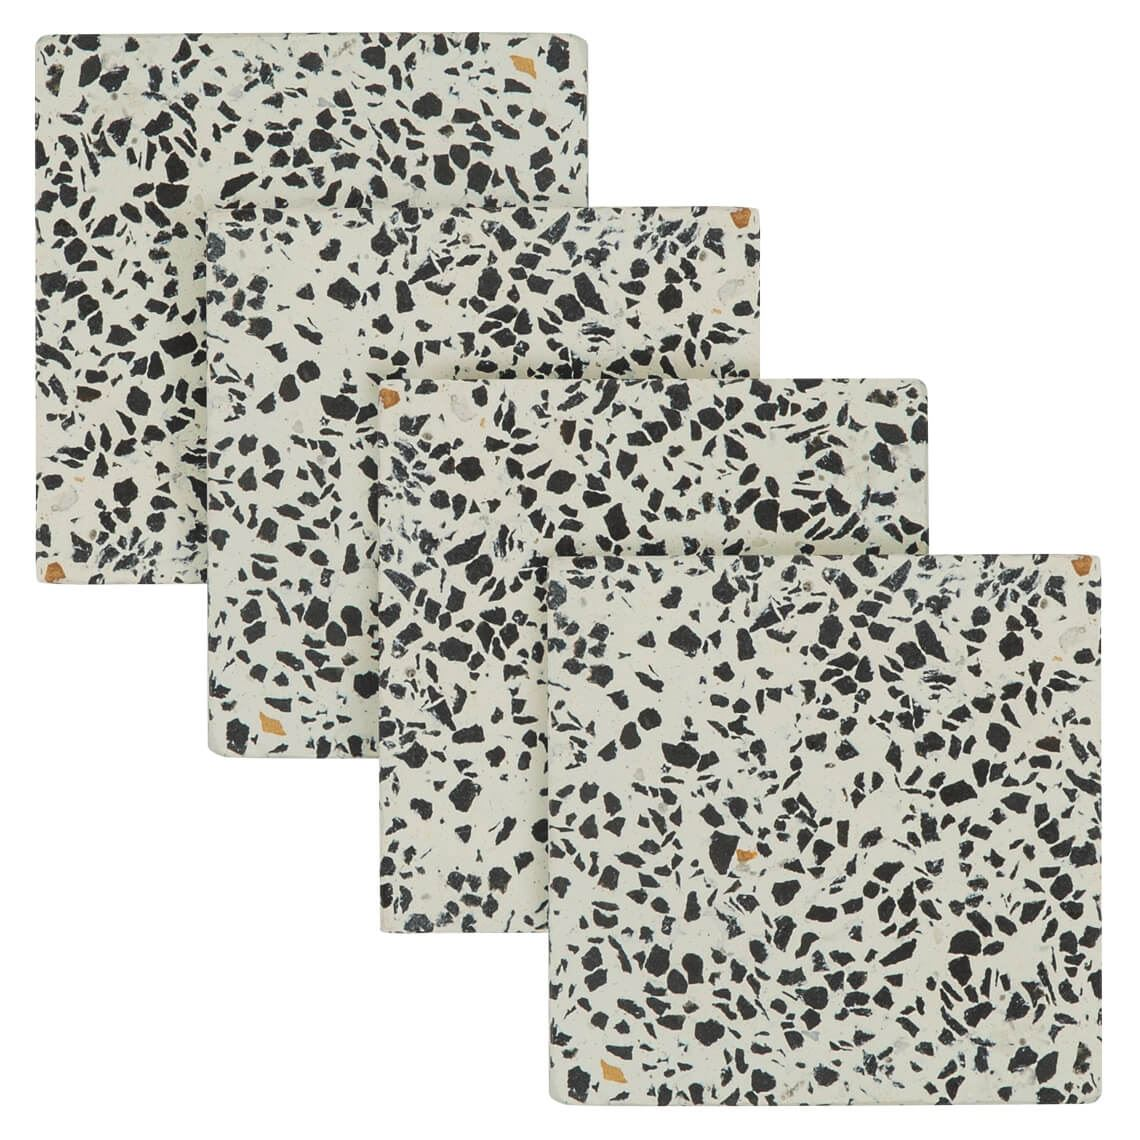 Terrazzo Set Of 4 Coasters Size W 10cm x D 10cm x H 1cm in Black/White Freedom